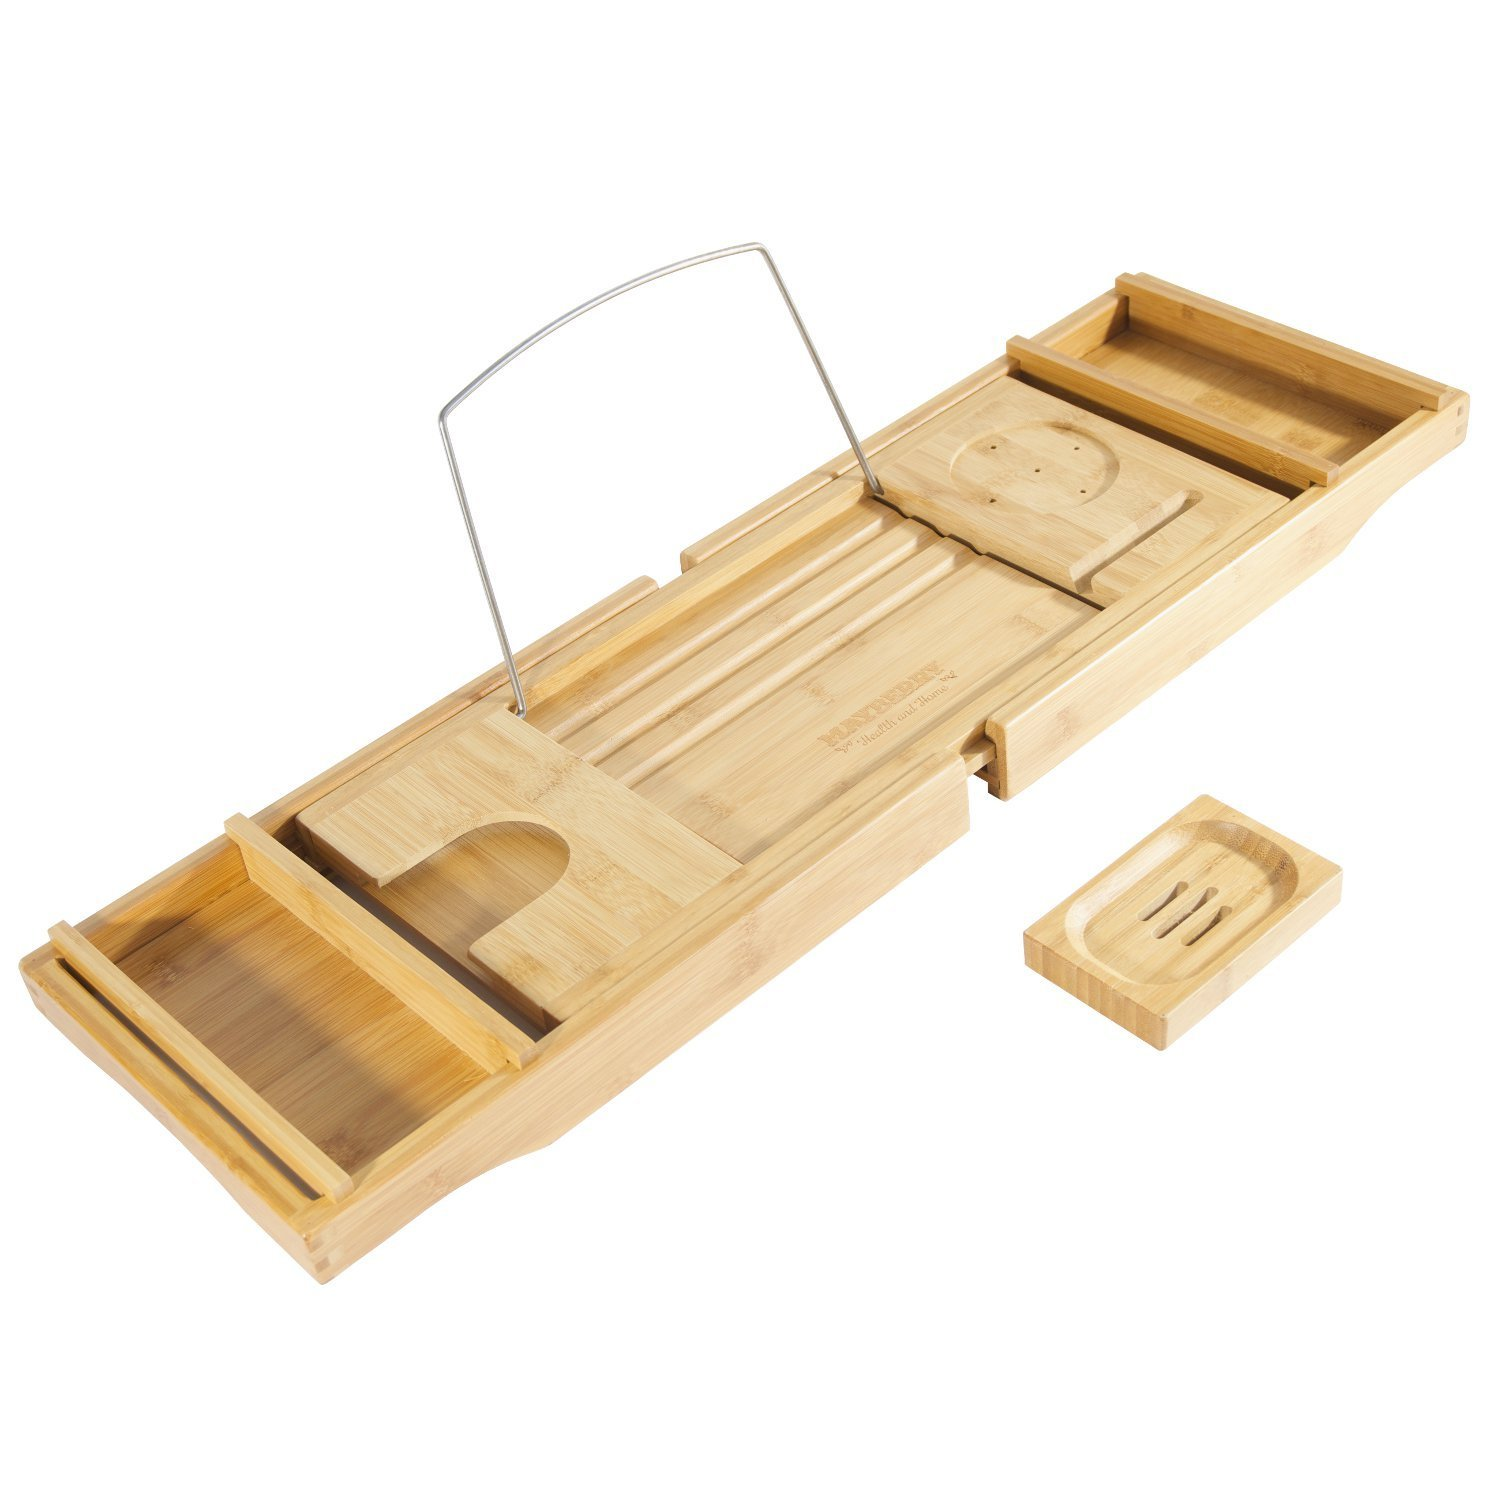 wholesale bamboo bathtub caddy tray for stylish design and high quality